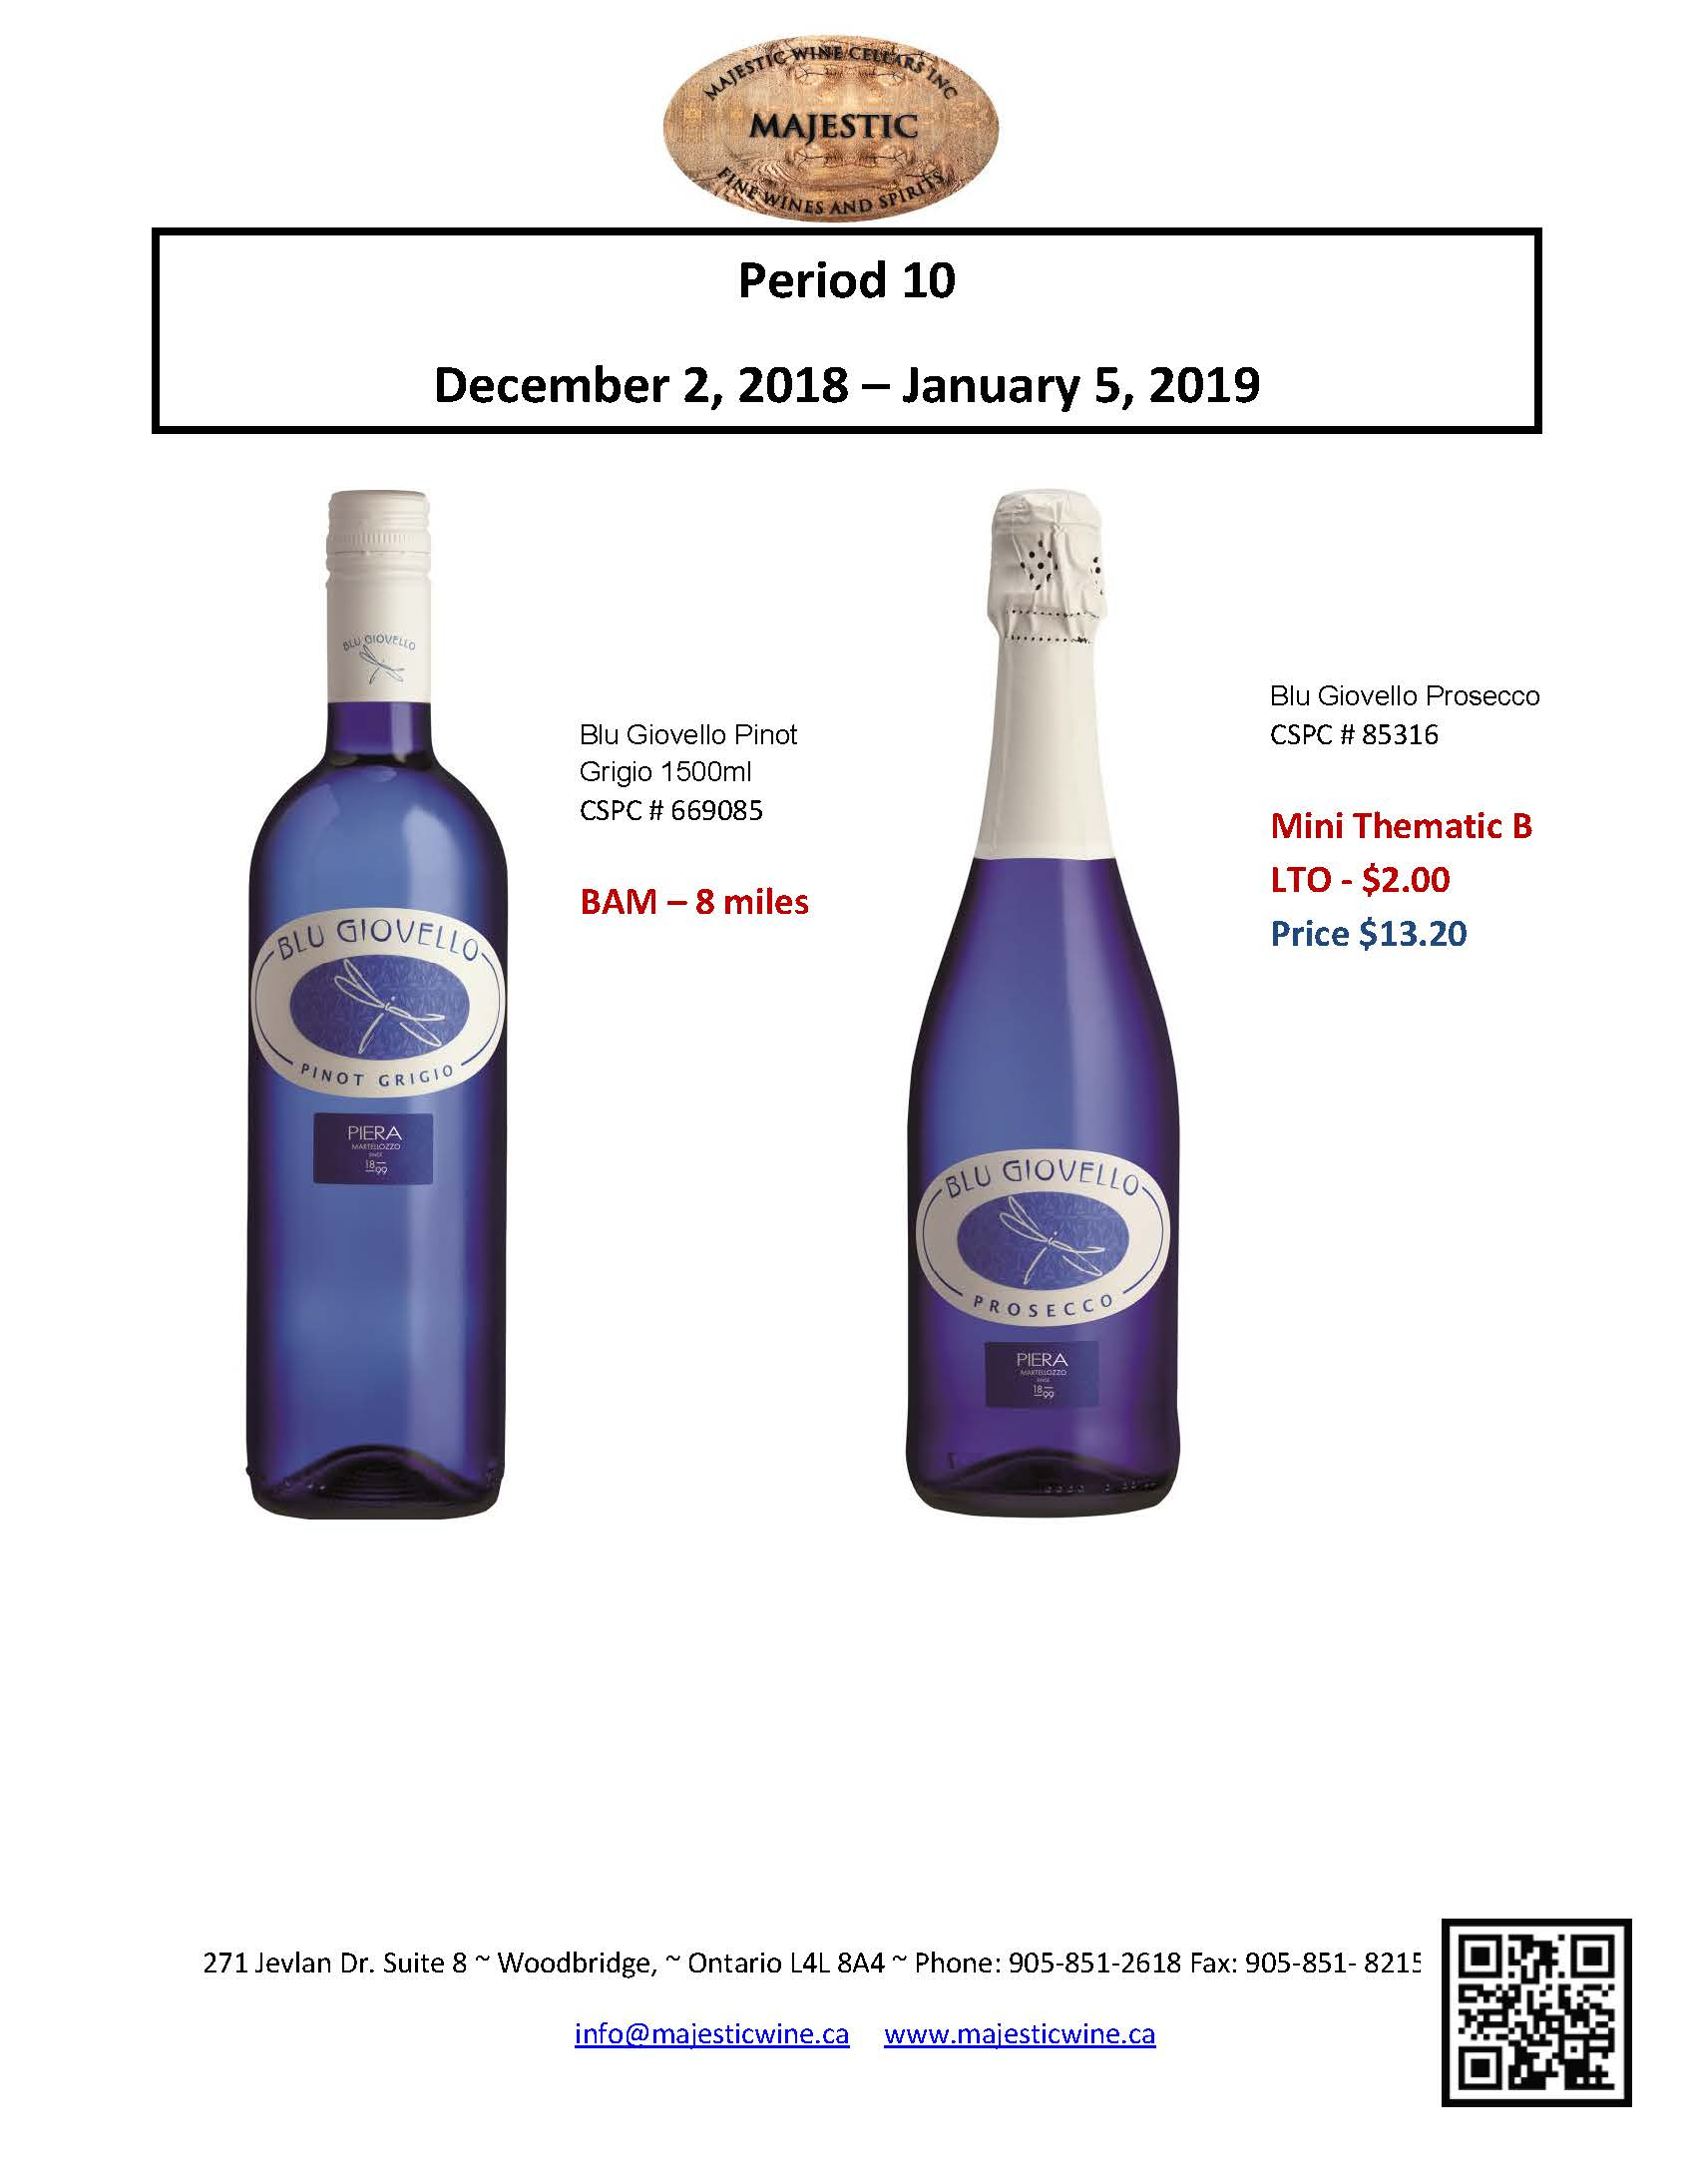 Period 10 - December 2nd - January 5th Promotion